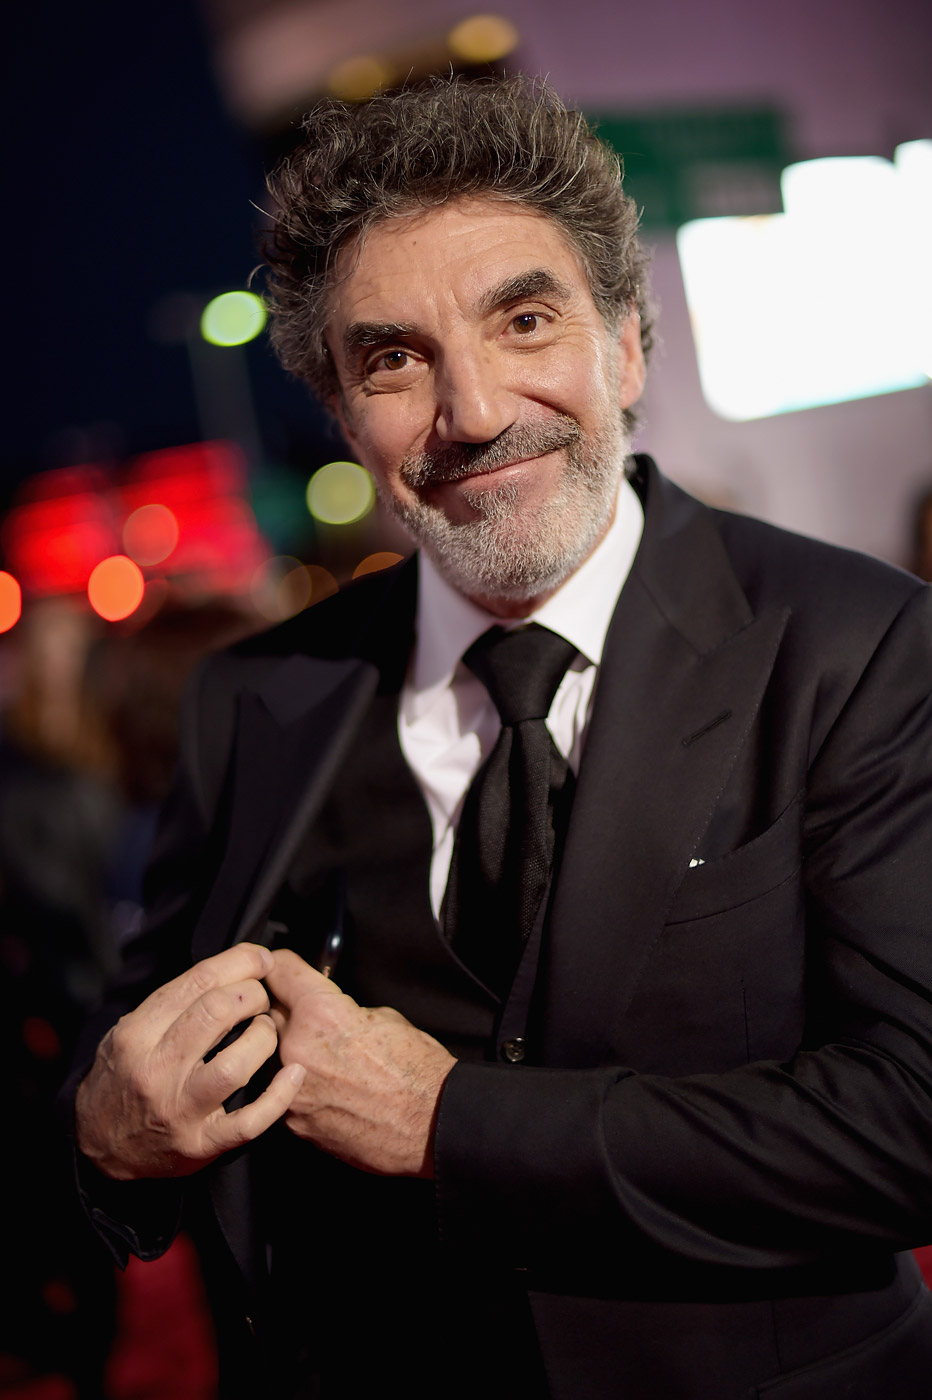 Chuck Lorre attends The 41st Annual People's Choice Awards at Nokia Theatre LA Live on Jan. 7, 2015 in Los Angeles, Calif.